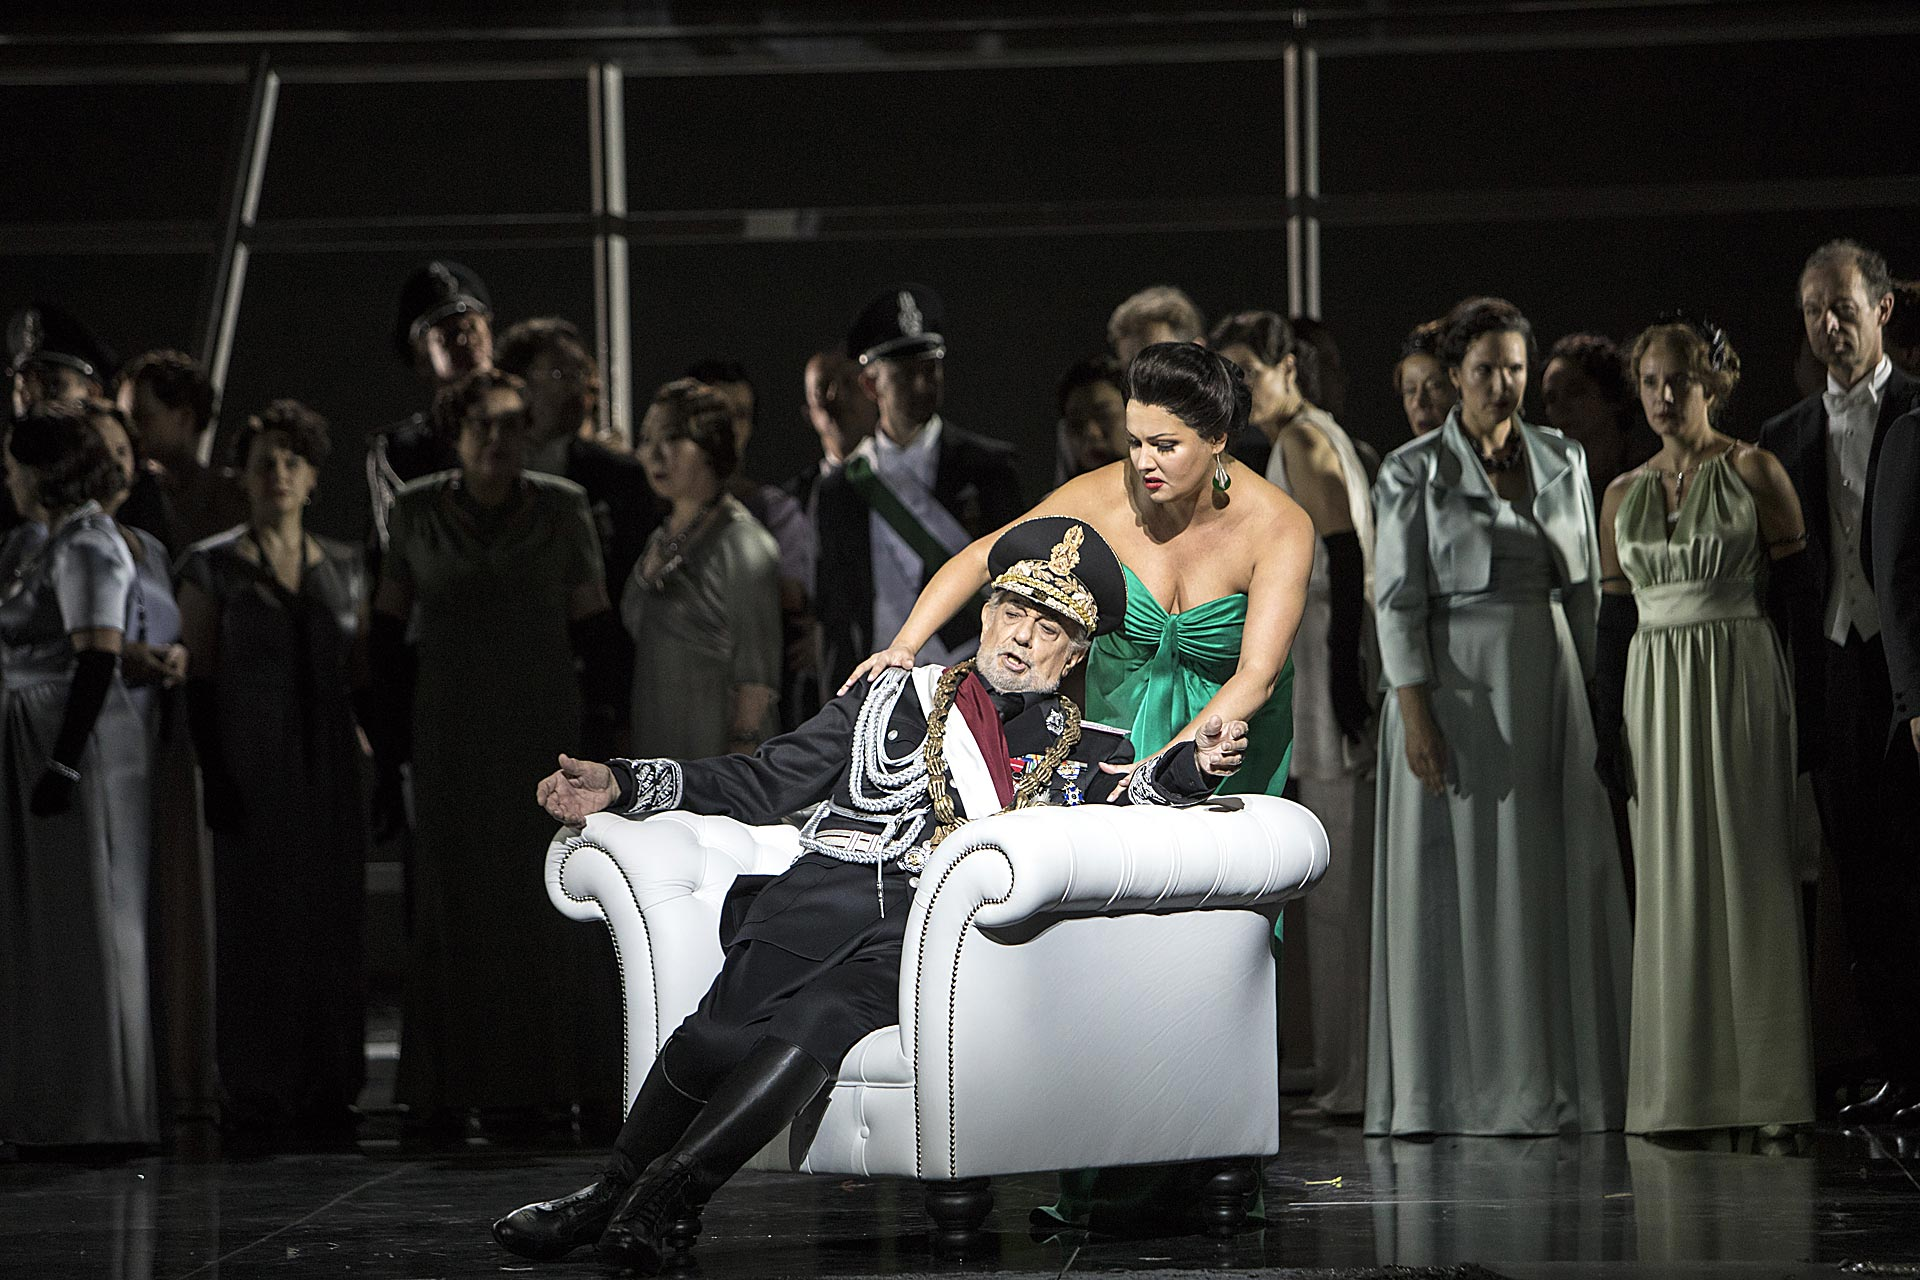 Plácido Domingo (Macbeth), Anna Netrebko (Lady Macbeth), Ensemble | Foto © Bernd Uhlig | Macbeth 41 (2)